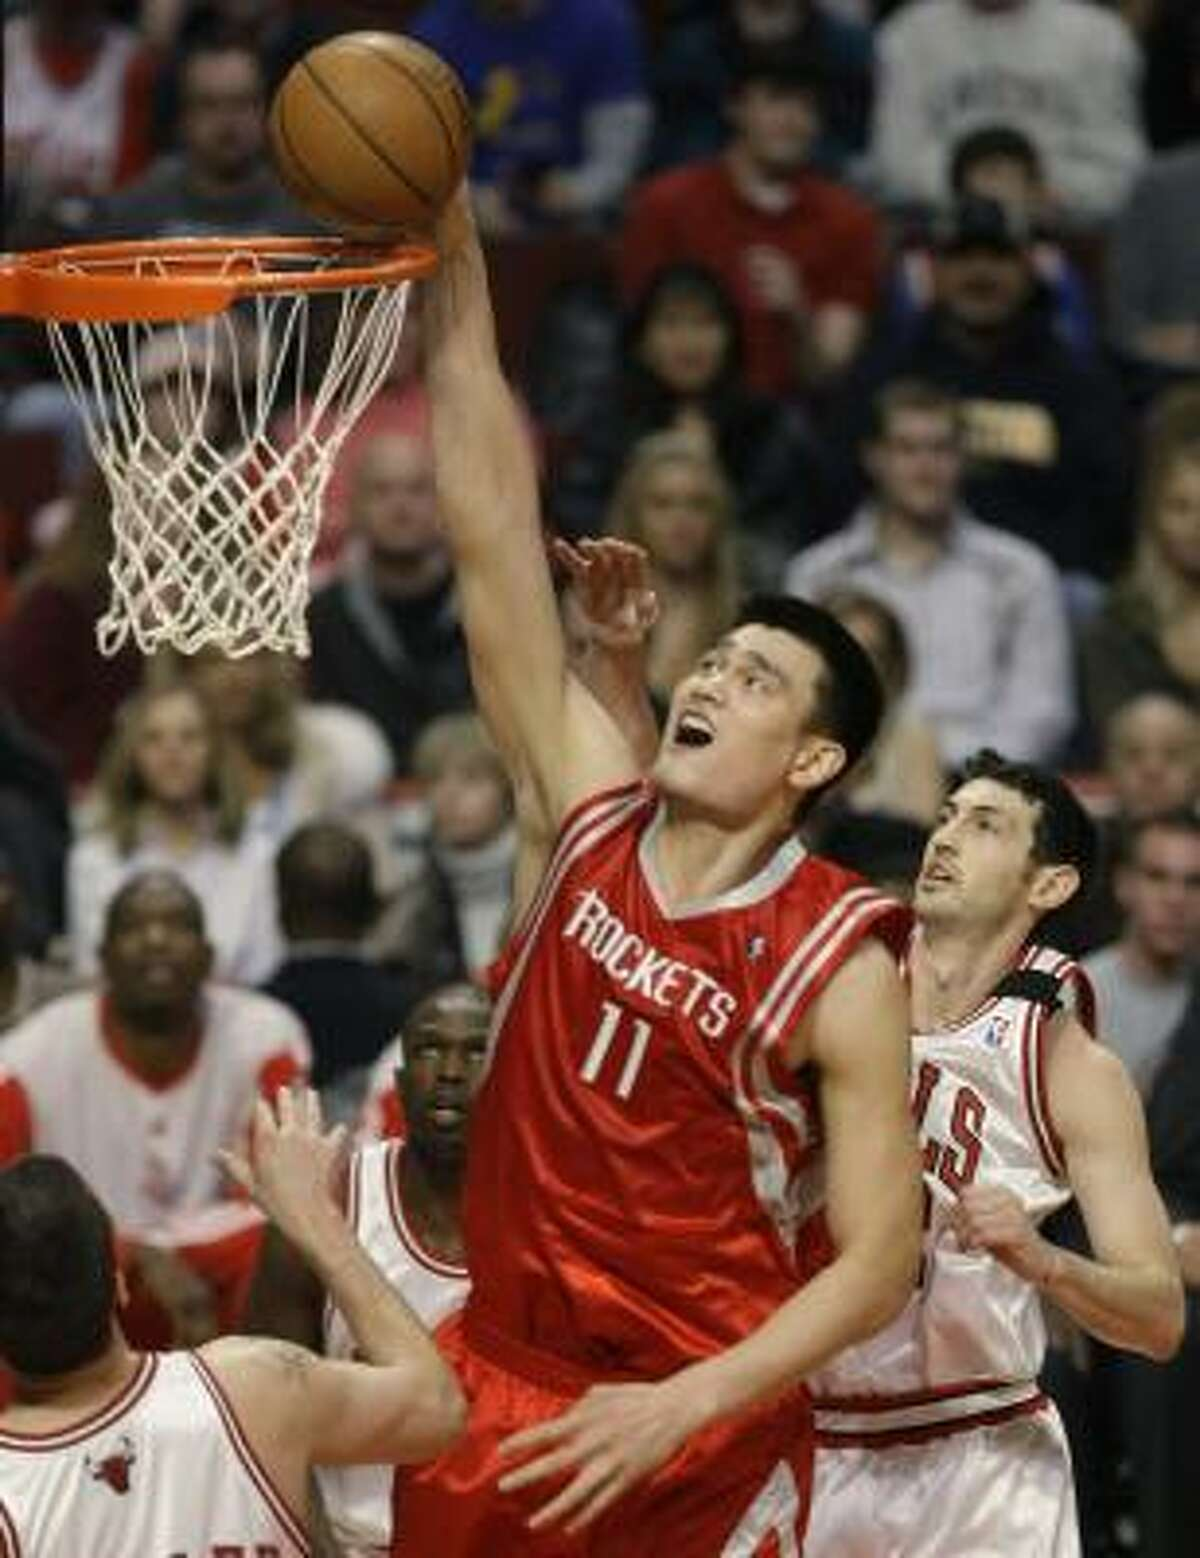 Yao Ming gets to the basket with Bulls guard Kirk Hinrich, right, trailing on the play in the first half.